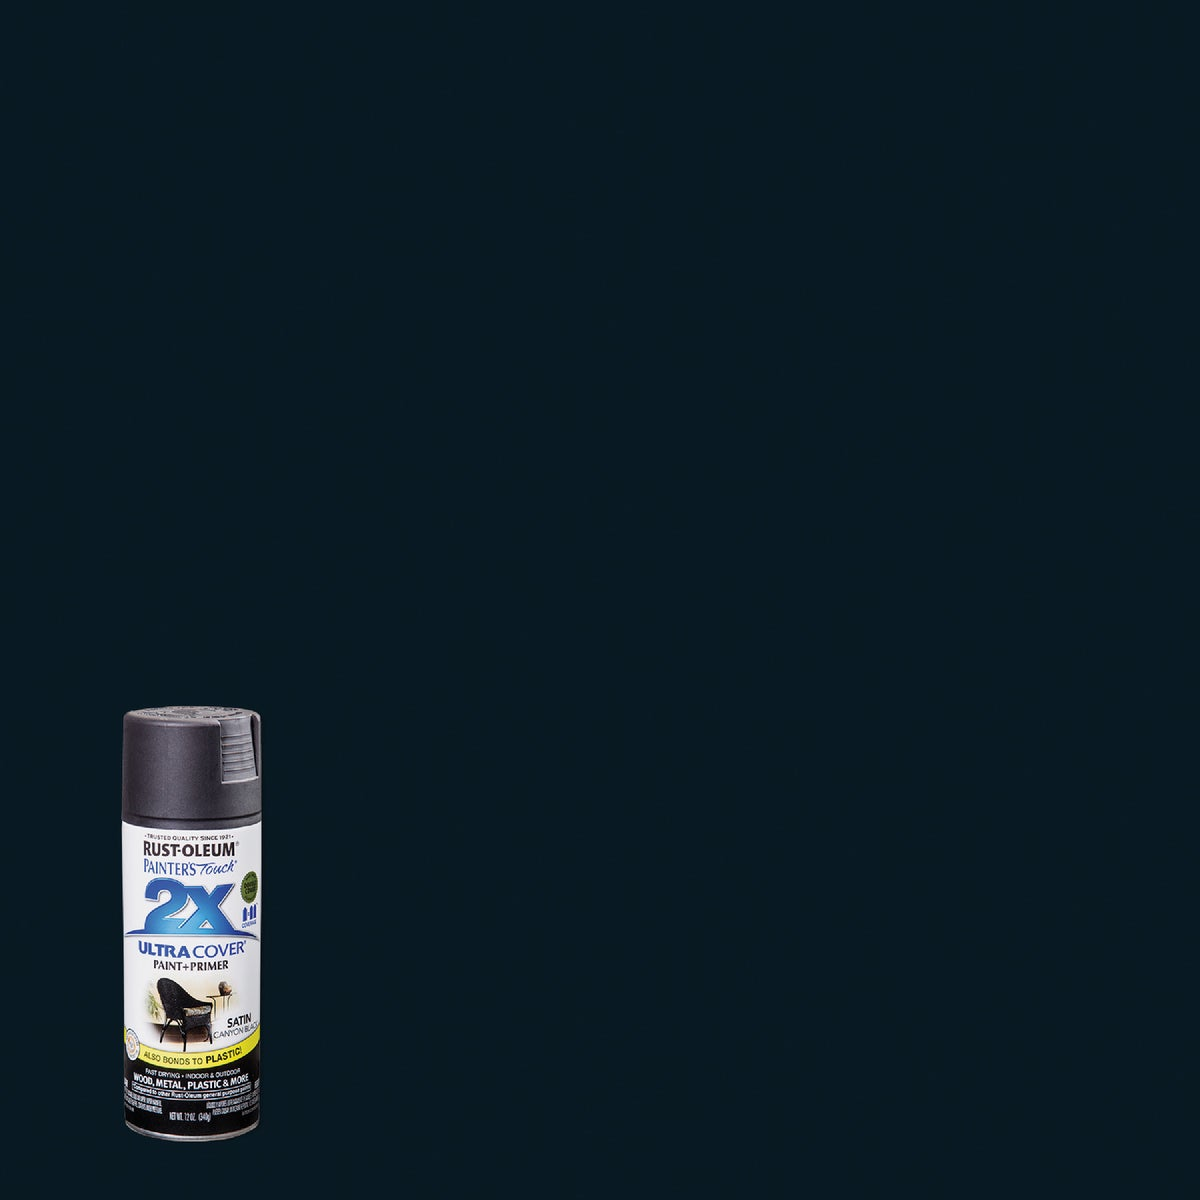 CNYN BLK SAT SPRAY PAINT - 249844 by Rustoleum